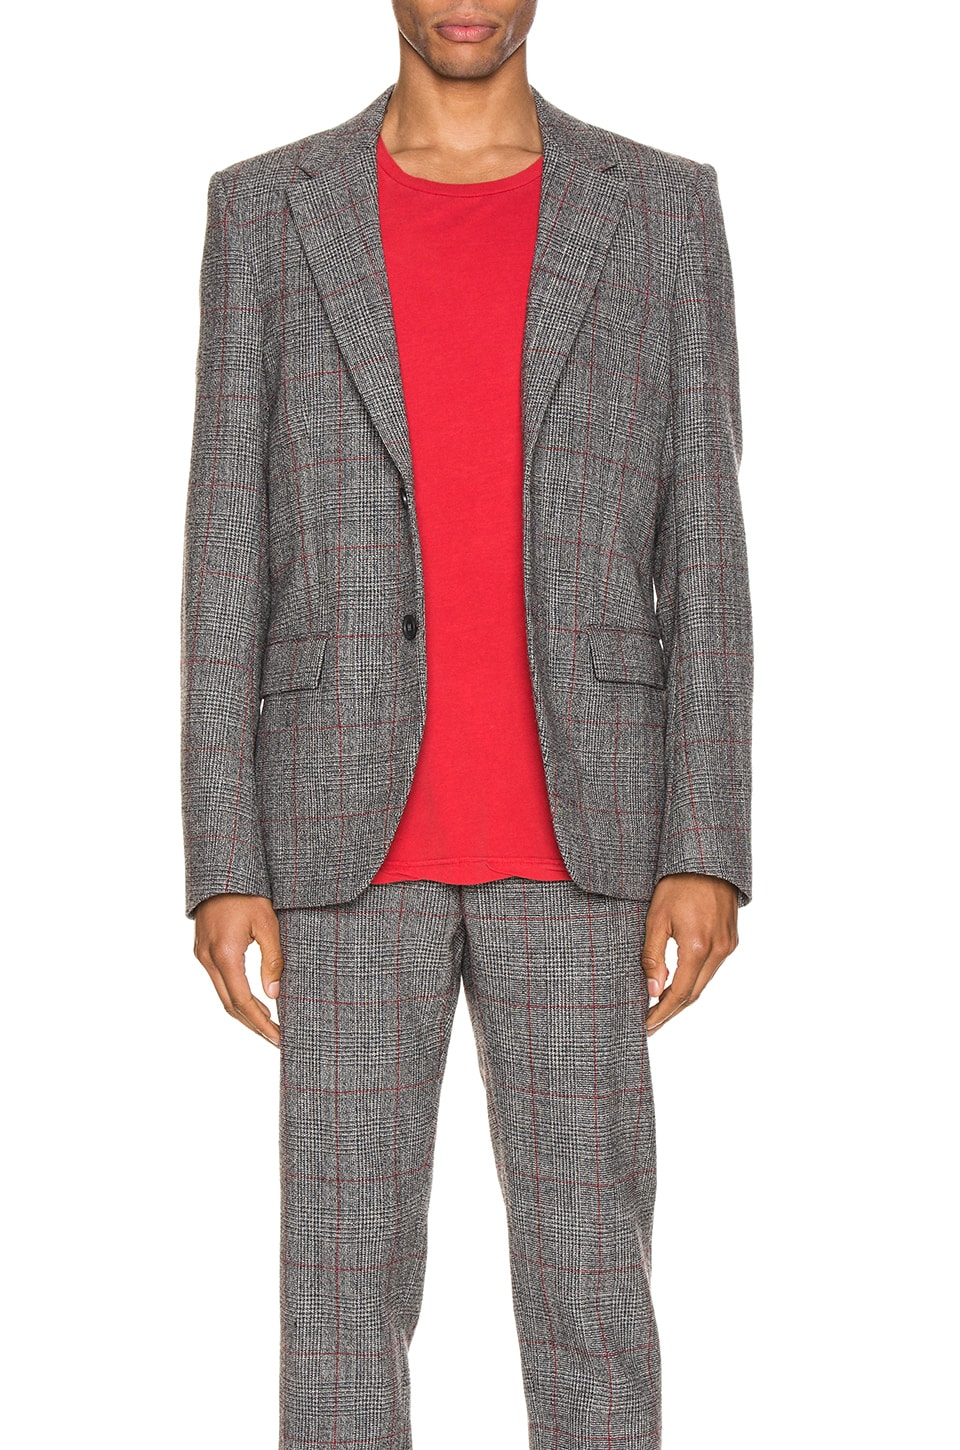 Helmut Lang Prince of Wales Blazer in Charcoal